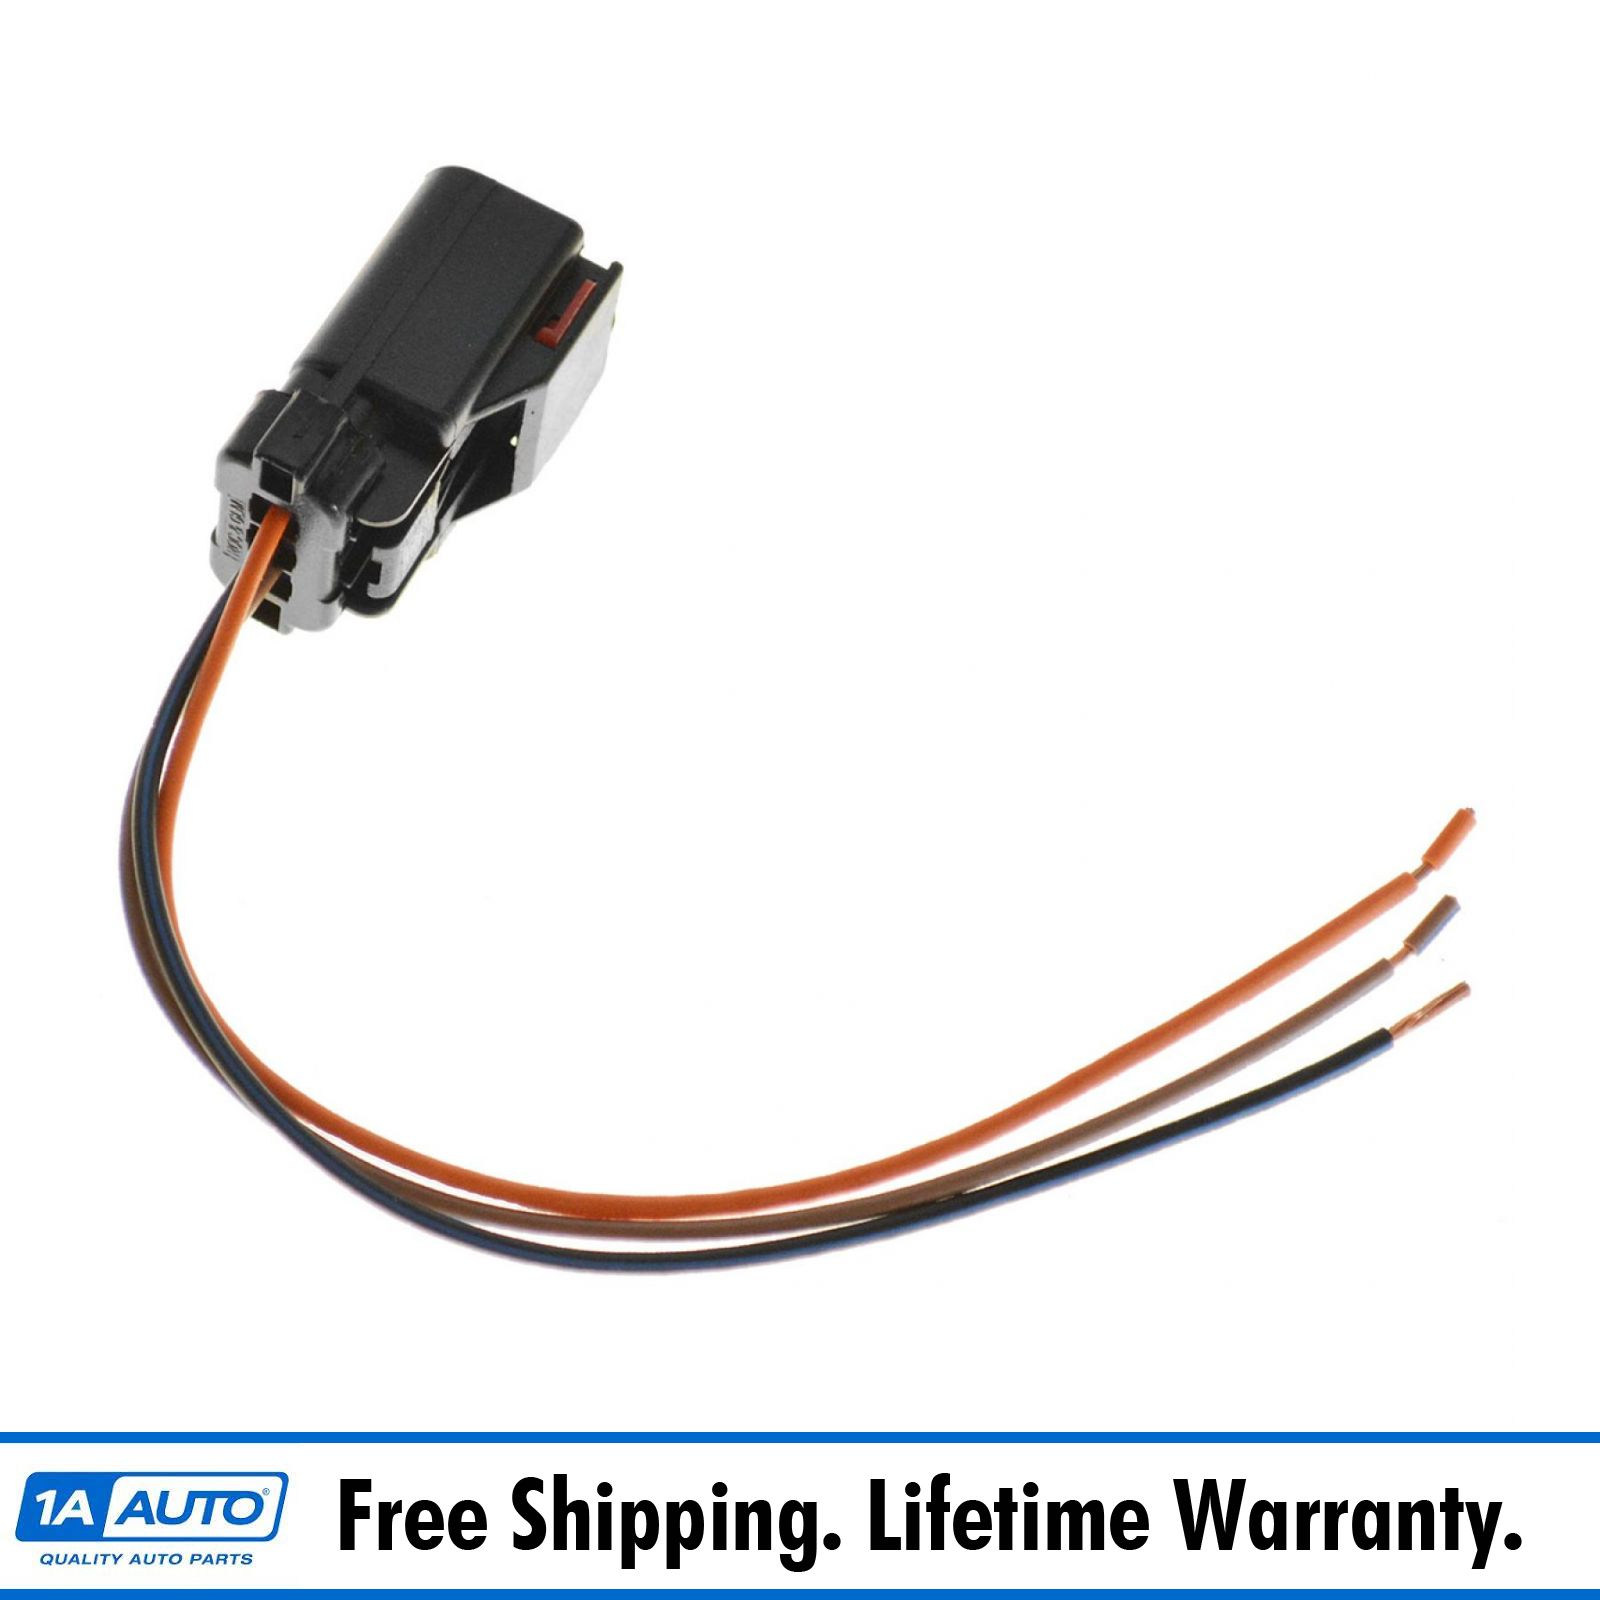 3 Pin Wire Harness Connector Wiring Library Adapter Mitsubishi Pigtail Terminal For Chrysler Dodge